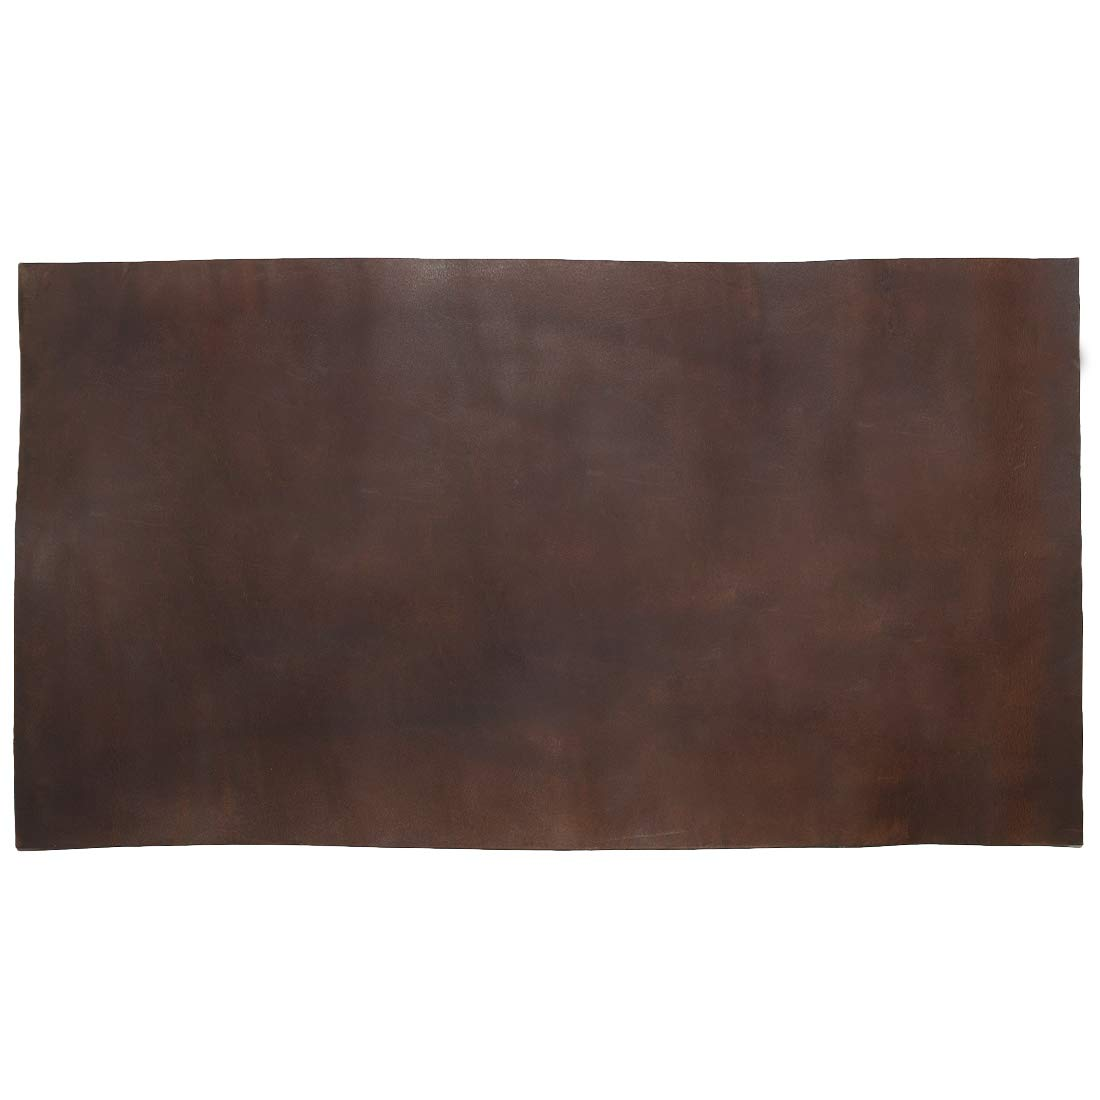 Thick Leather Square (10 x 18 in.) for Crafts/Tooling/Hobby Workshop, Heavy Weight (3.5mm) by Hide & Drink :: Bourbon Brown